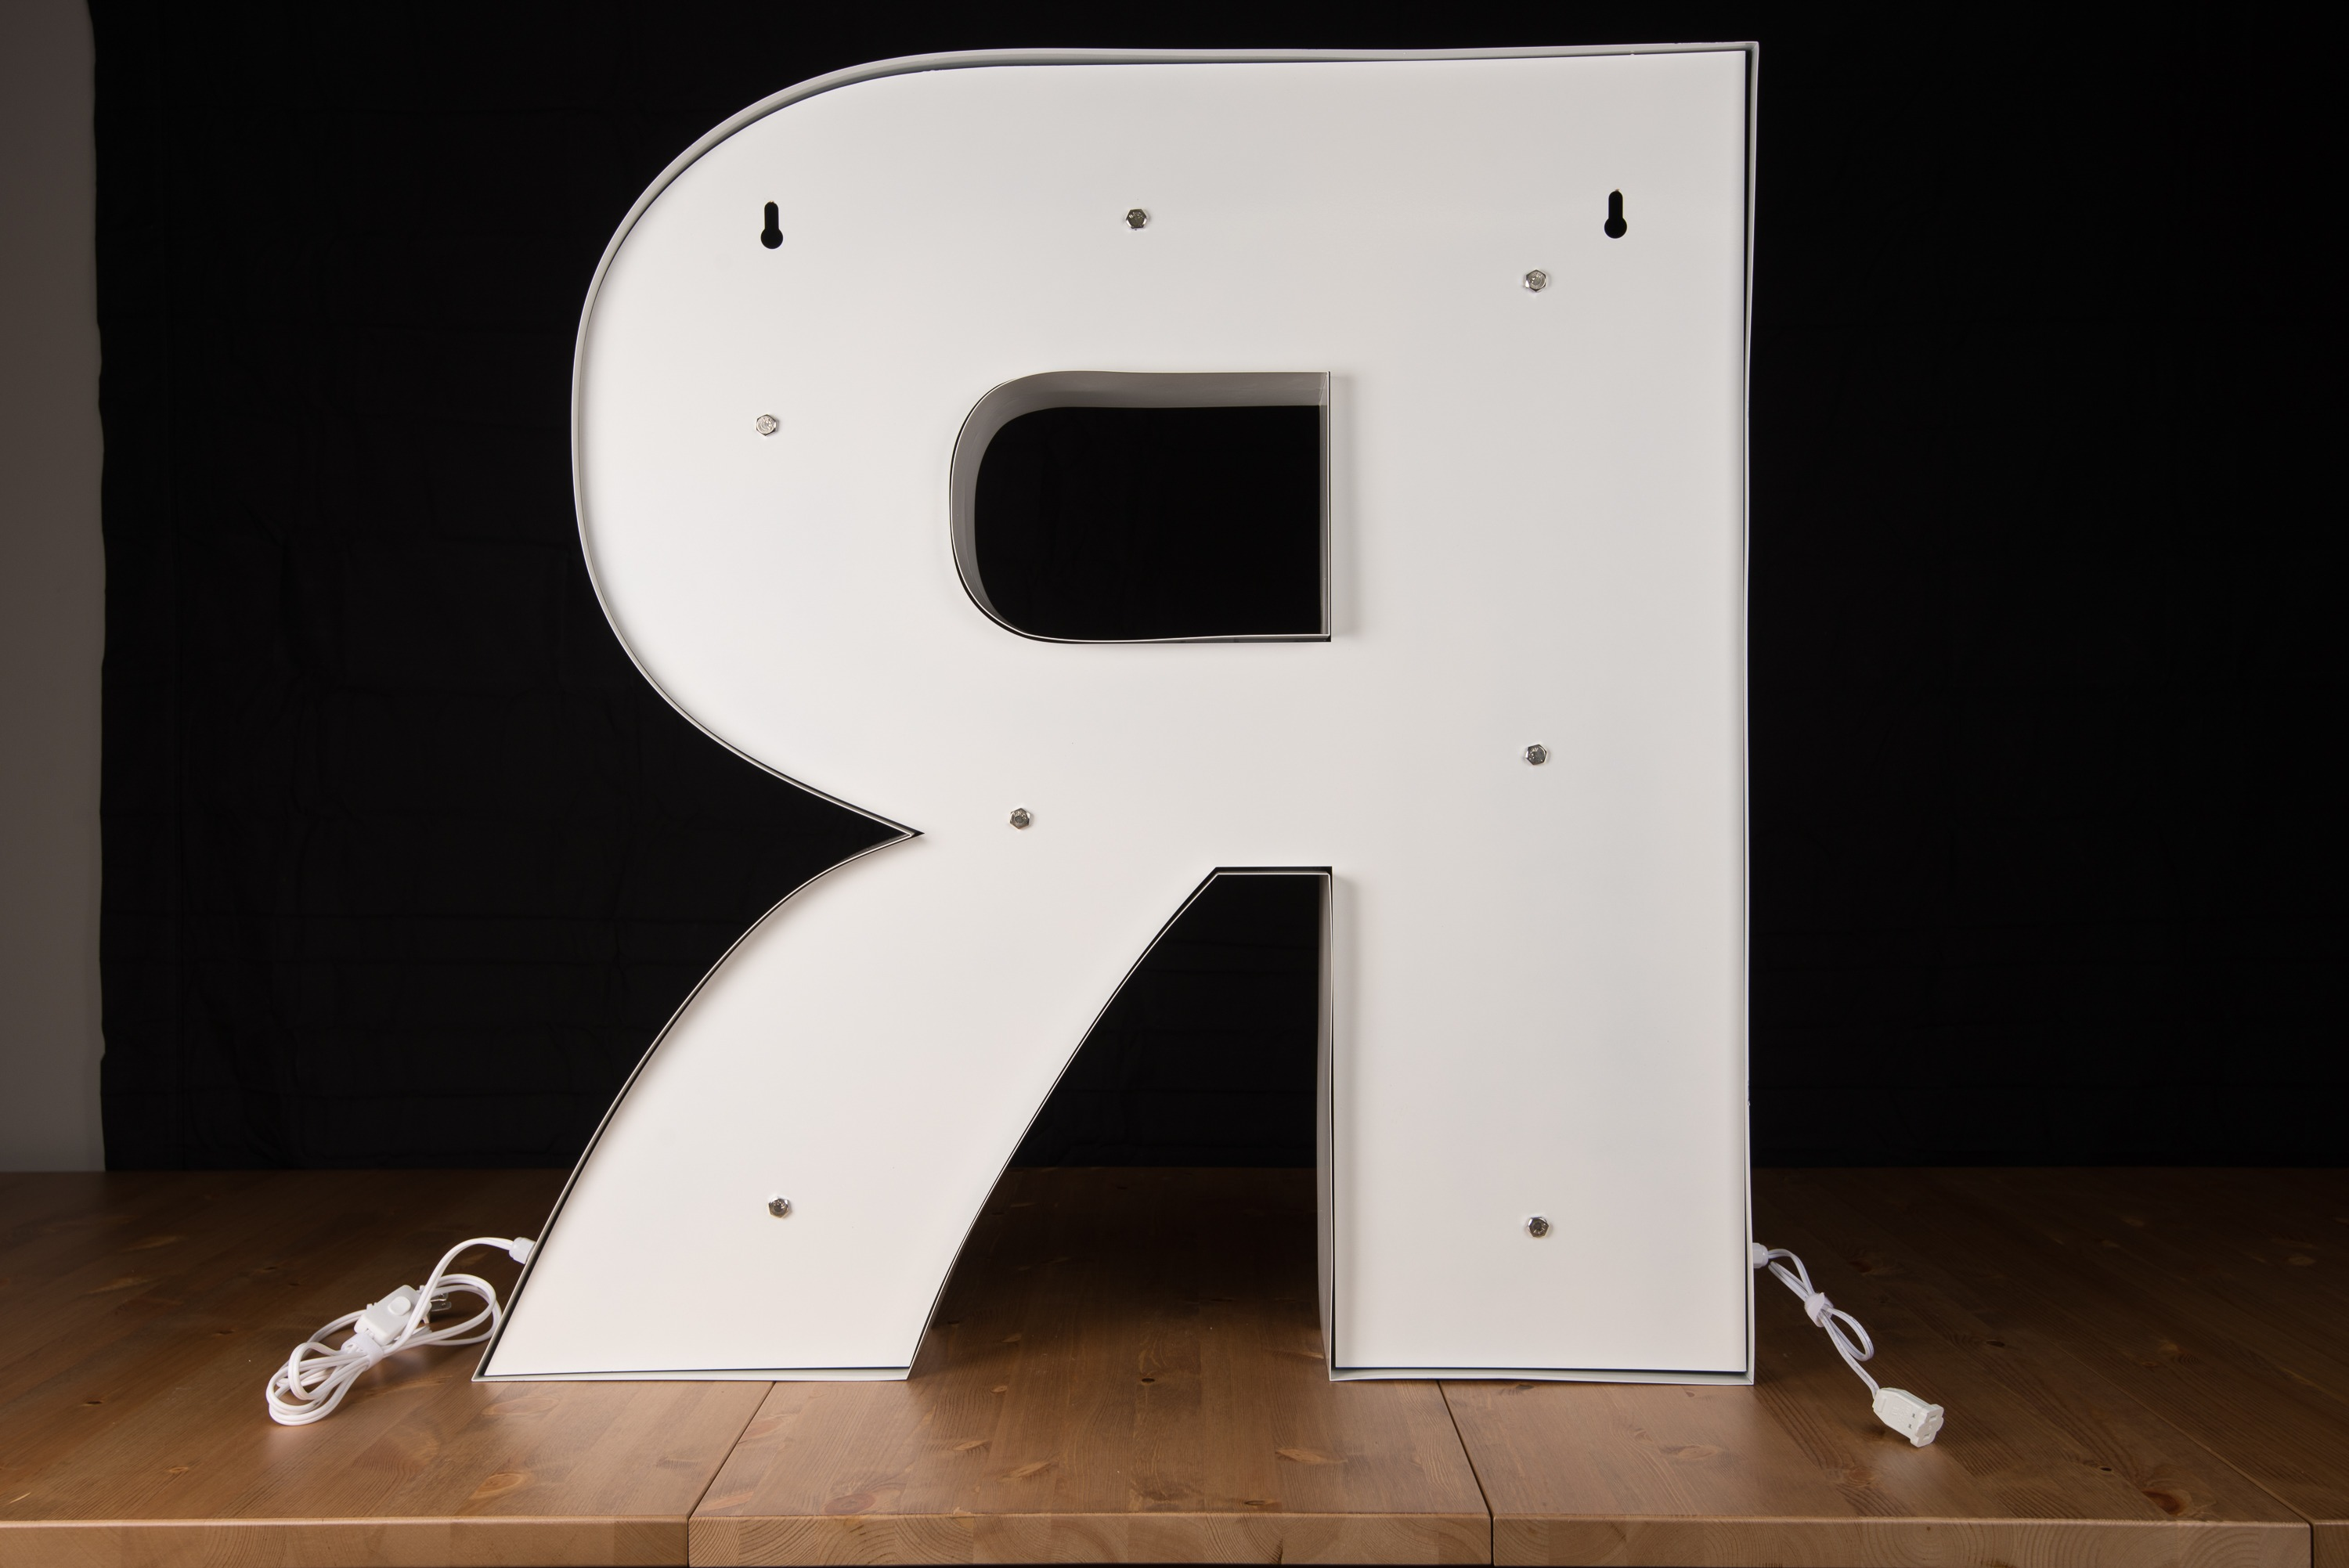 marquee letters for sale marquee letter 3 foot rent letters 14111 | marquee letter for events